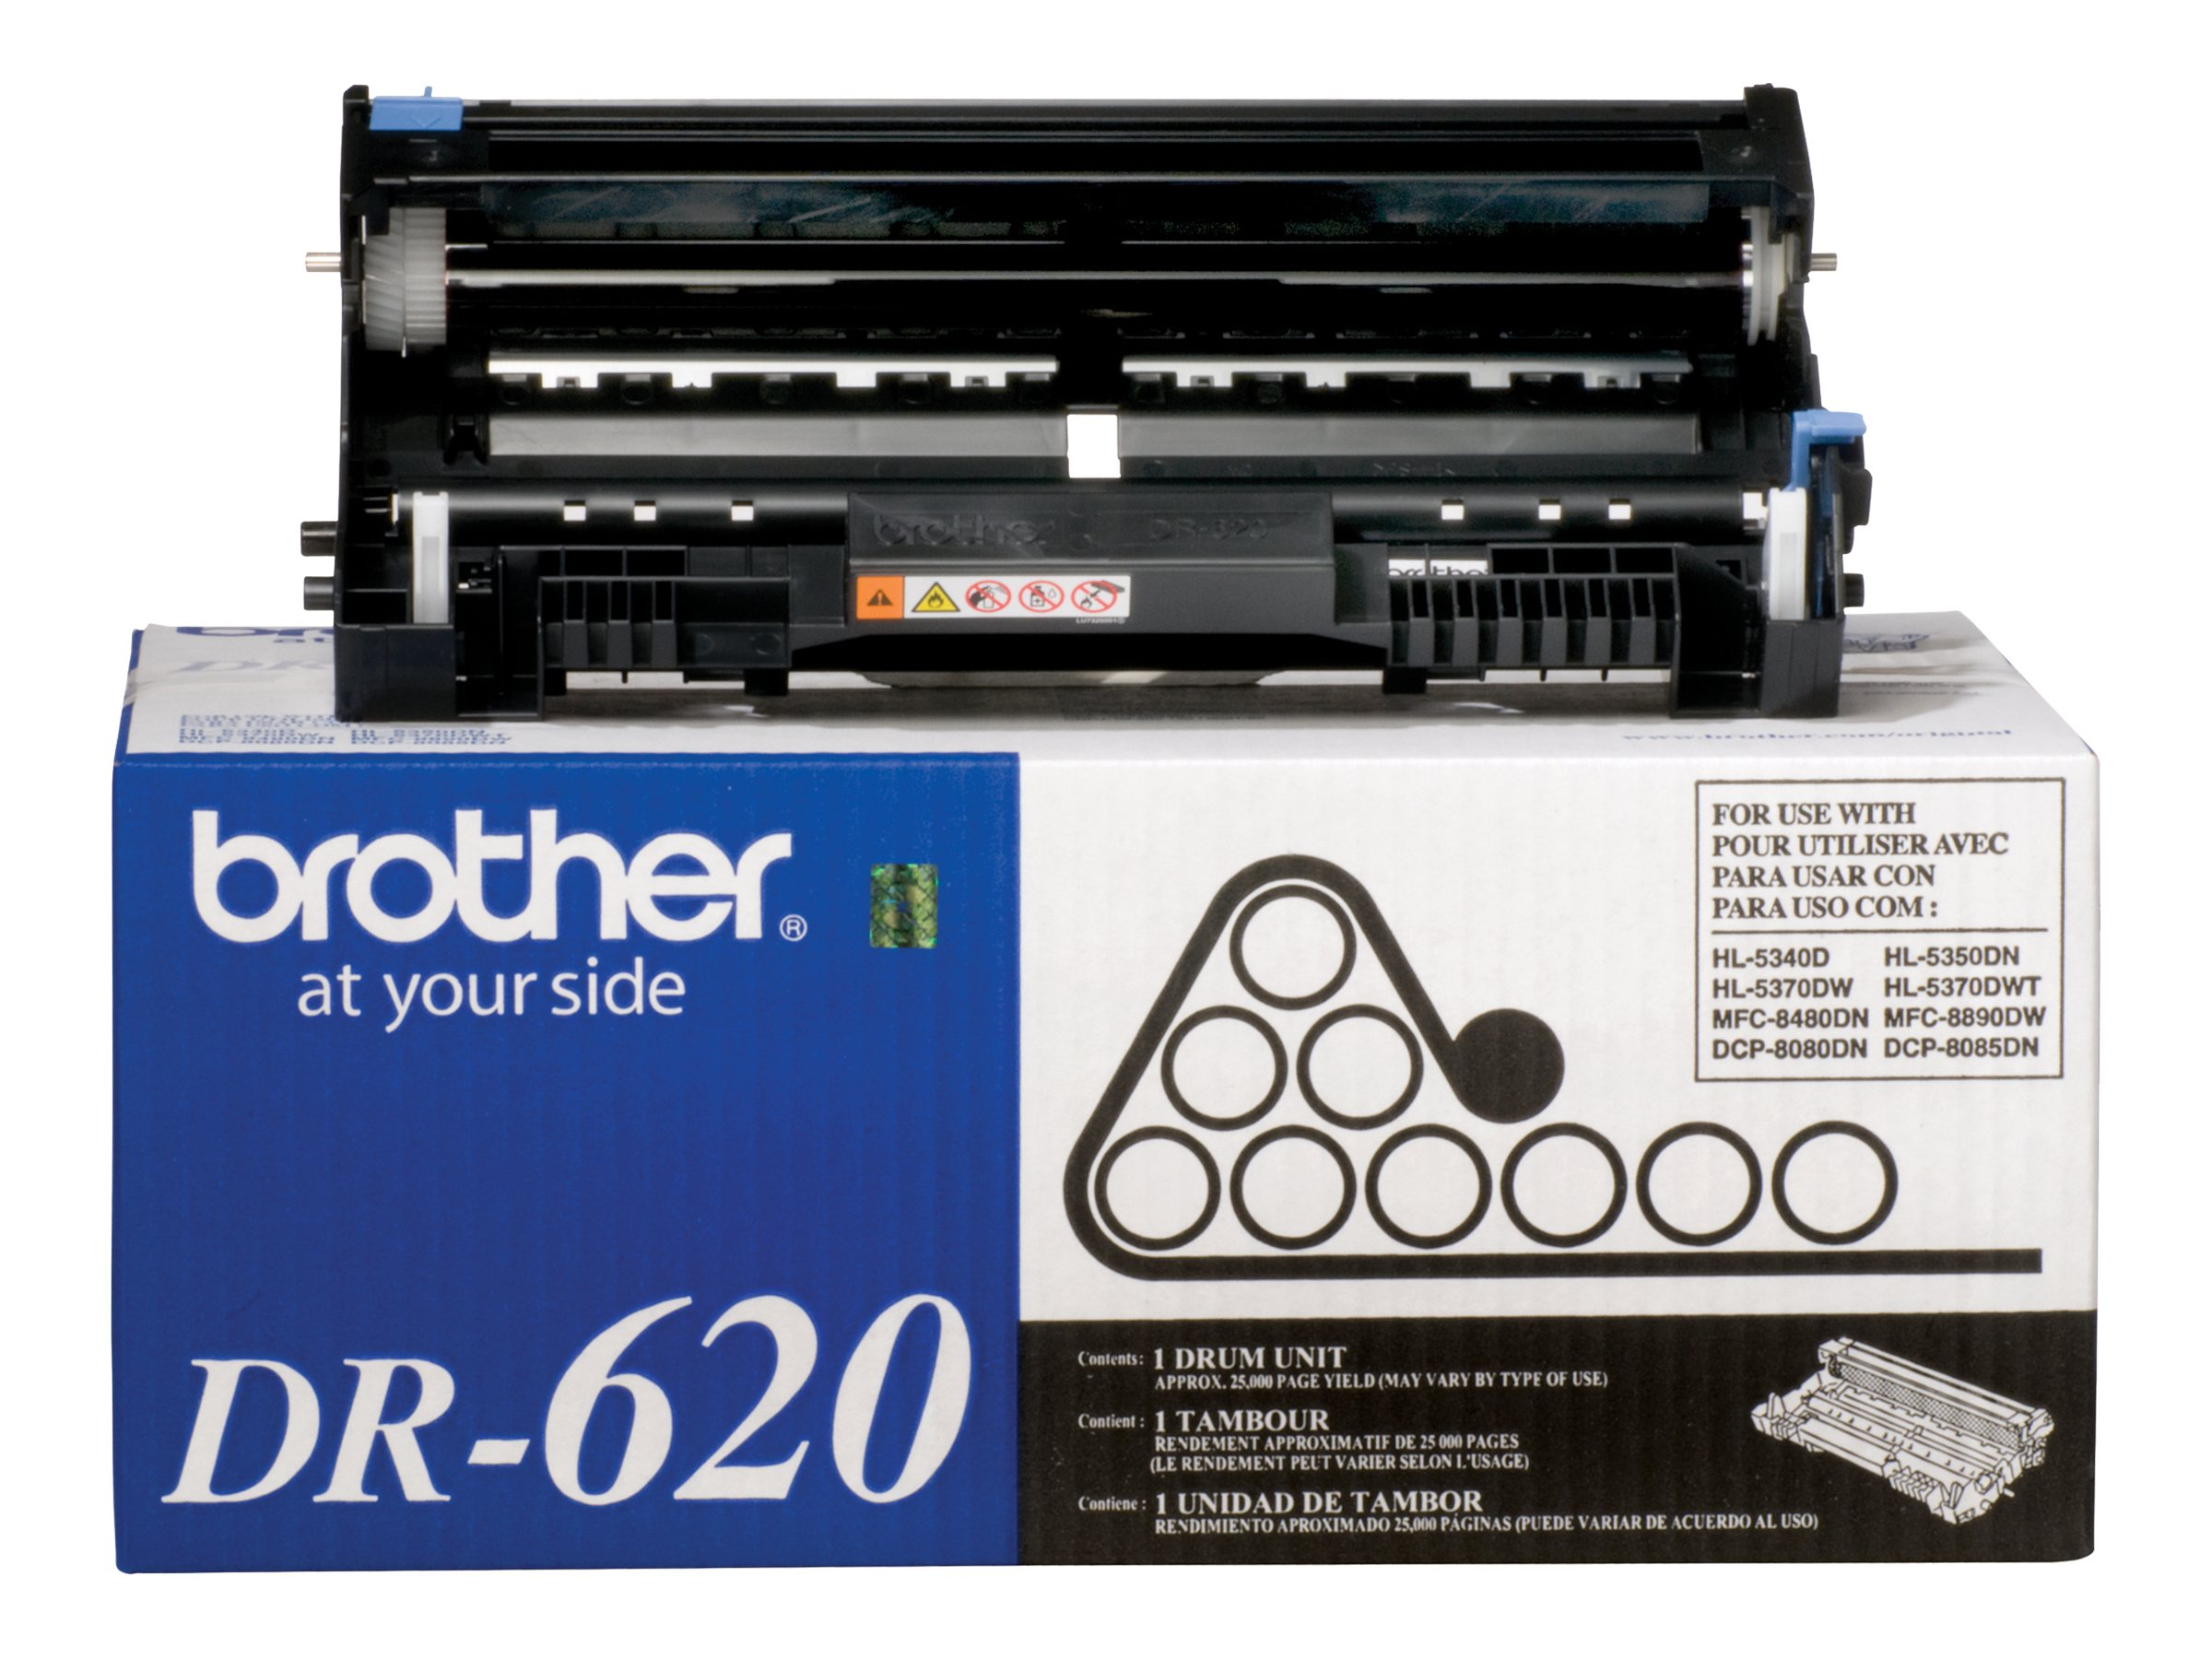 Brother DR620 Image 1